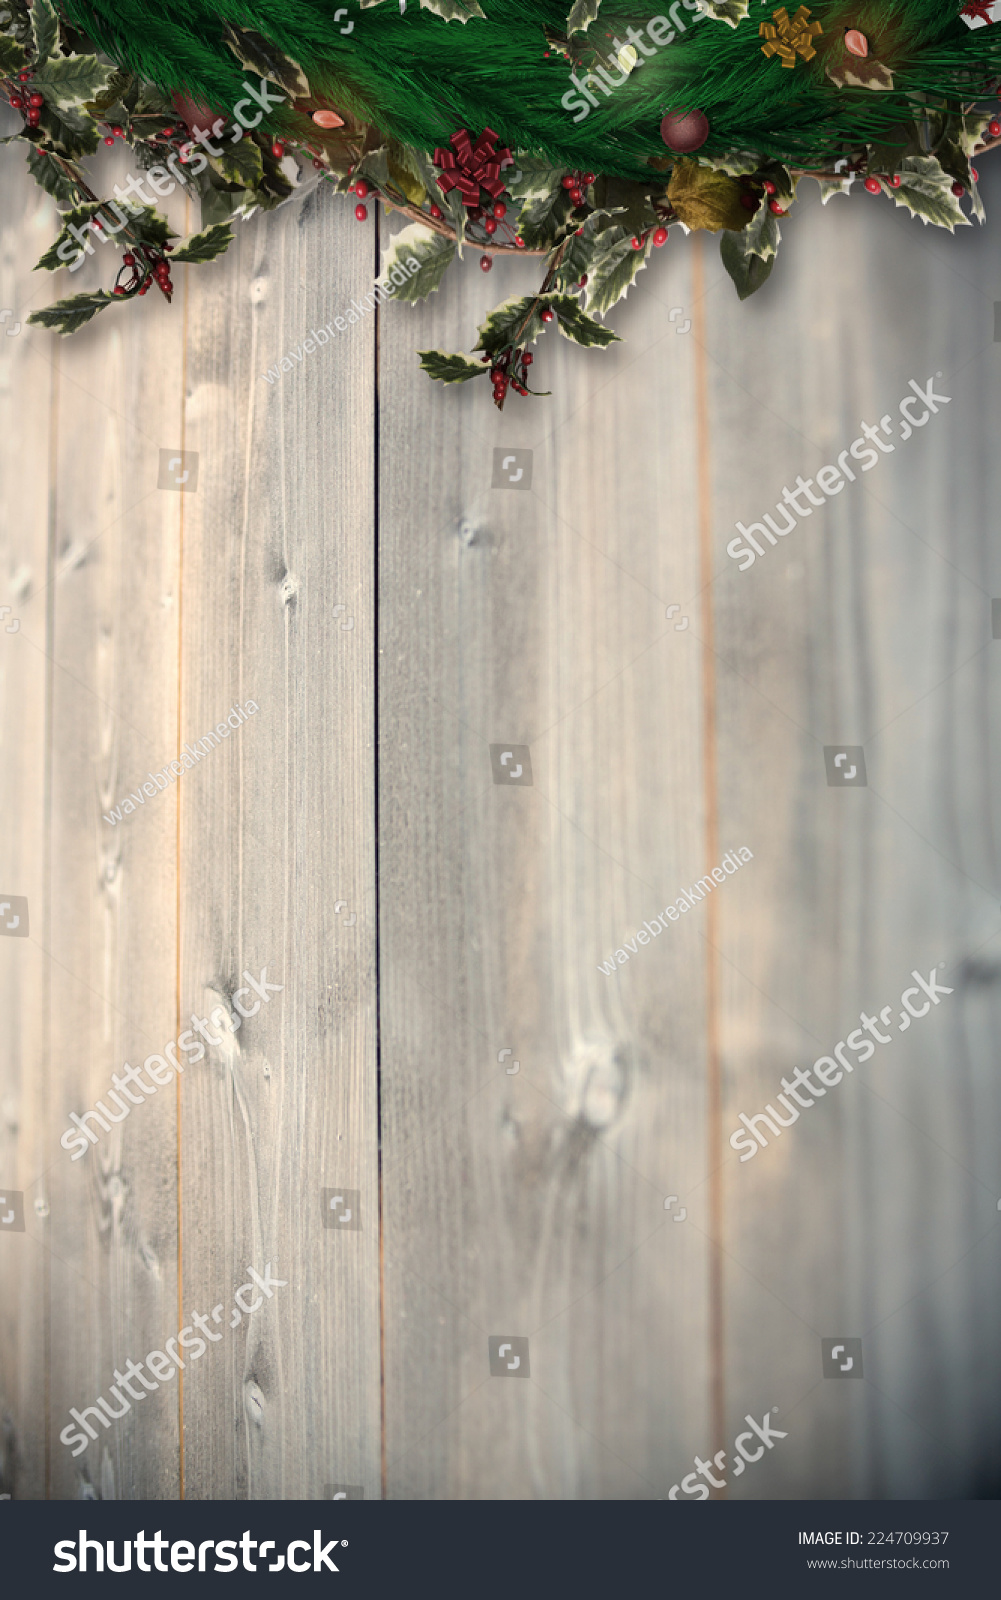 Festive christmas wreath with decorations against bleached wooden planks background #224709937